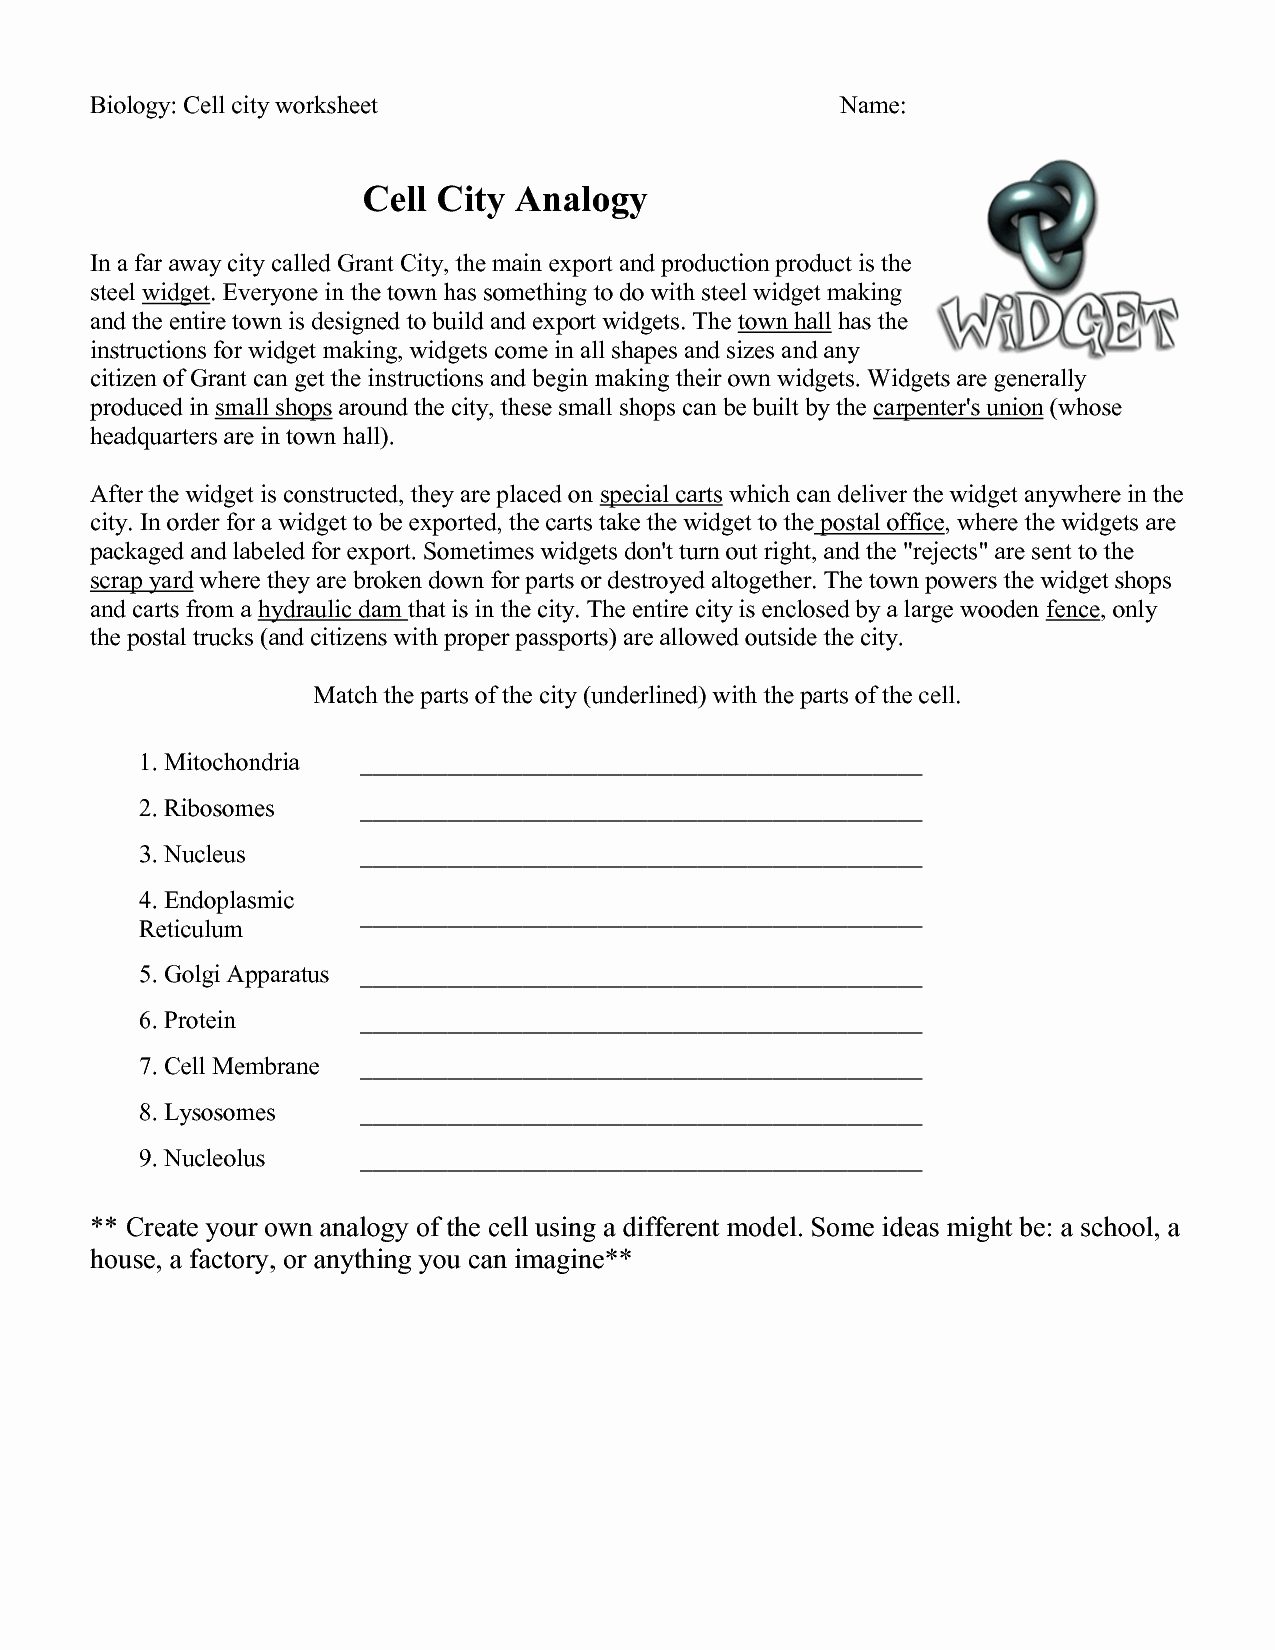 Cell City Analogy Worksheet Answers Elegant 18 Best Of Biology Cells Worksheets Answer Keys